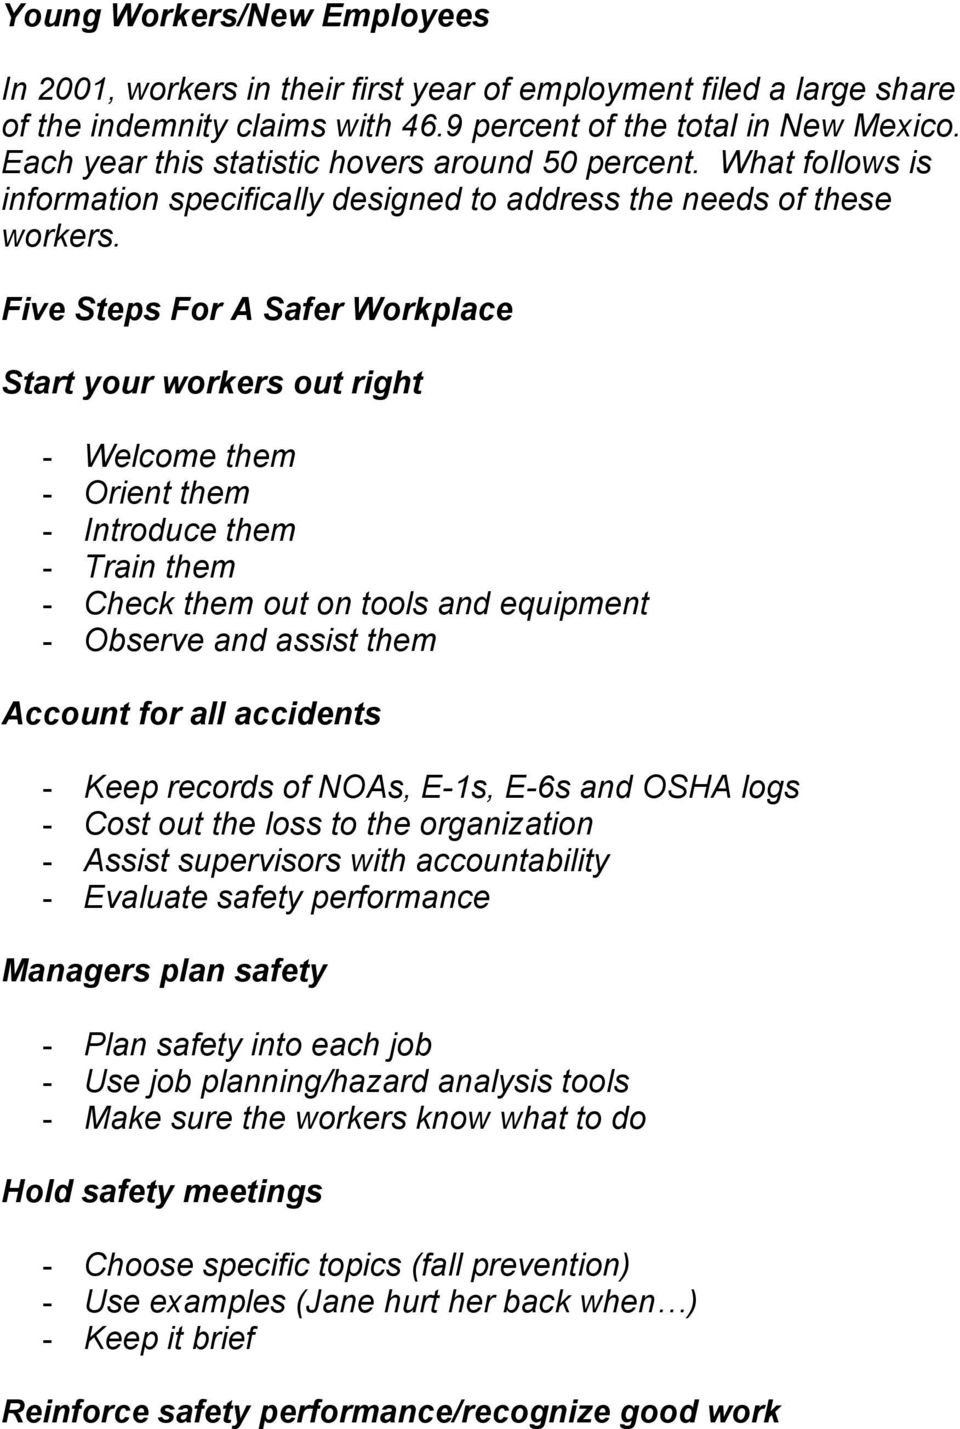 Five Steps For A Safer Workplace Start your workers out right - Welcome them - Orient them - Introduce them - Train them - Check them out on tools and equipment - Observe and assist them Account for